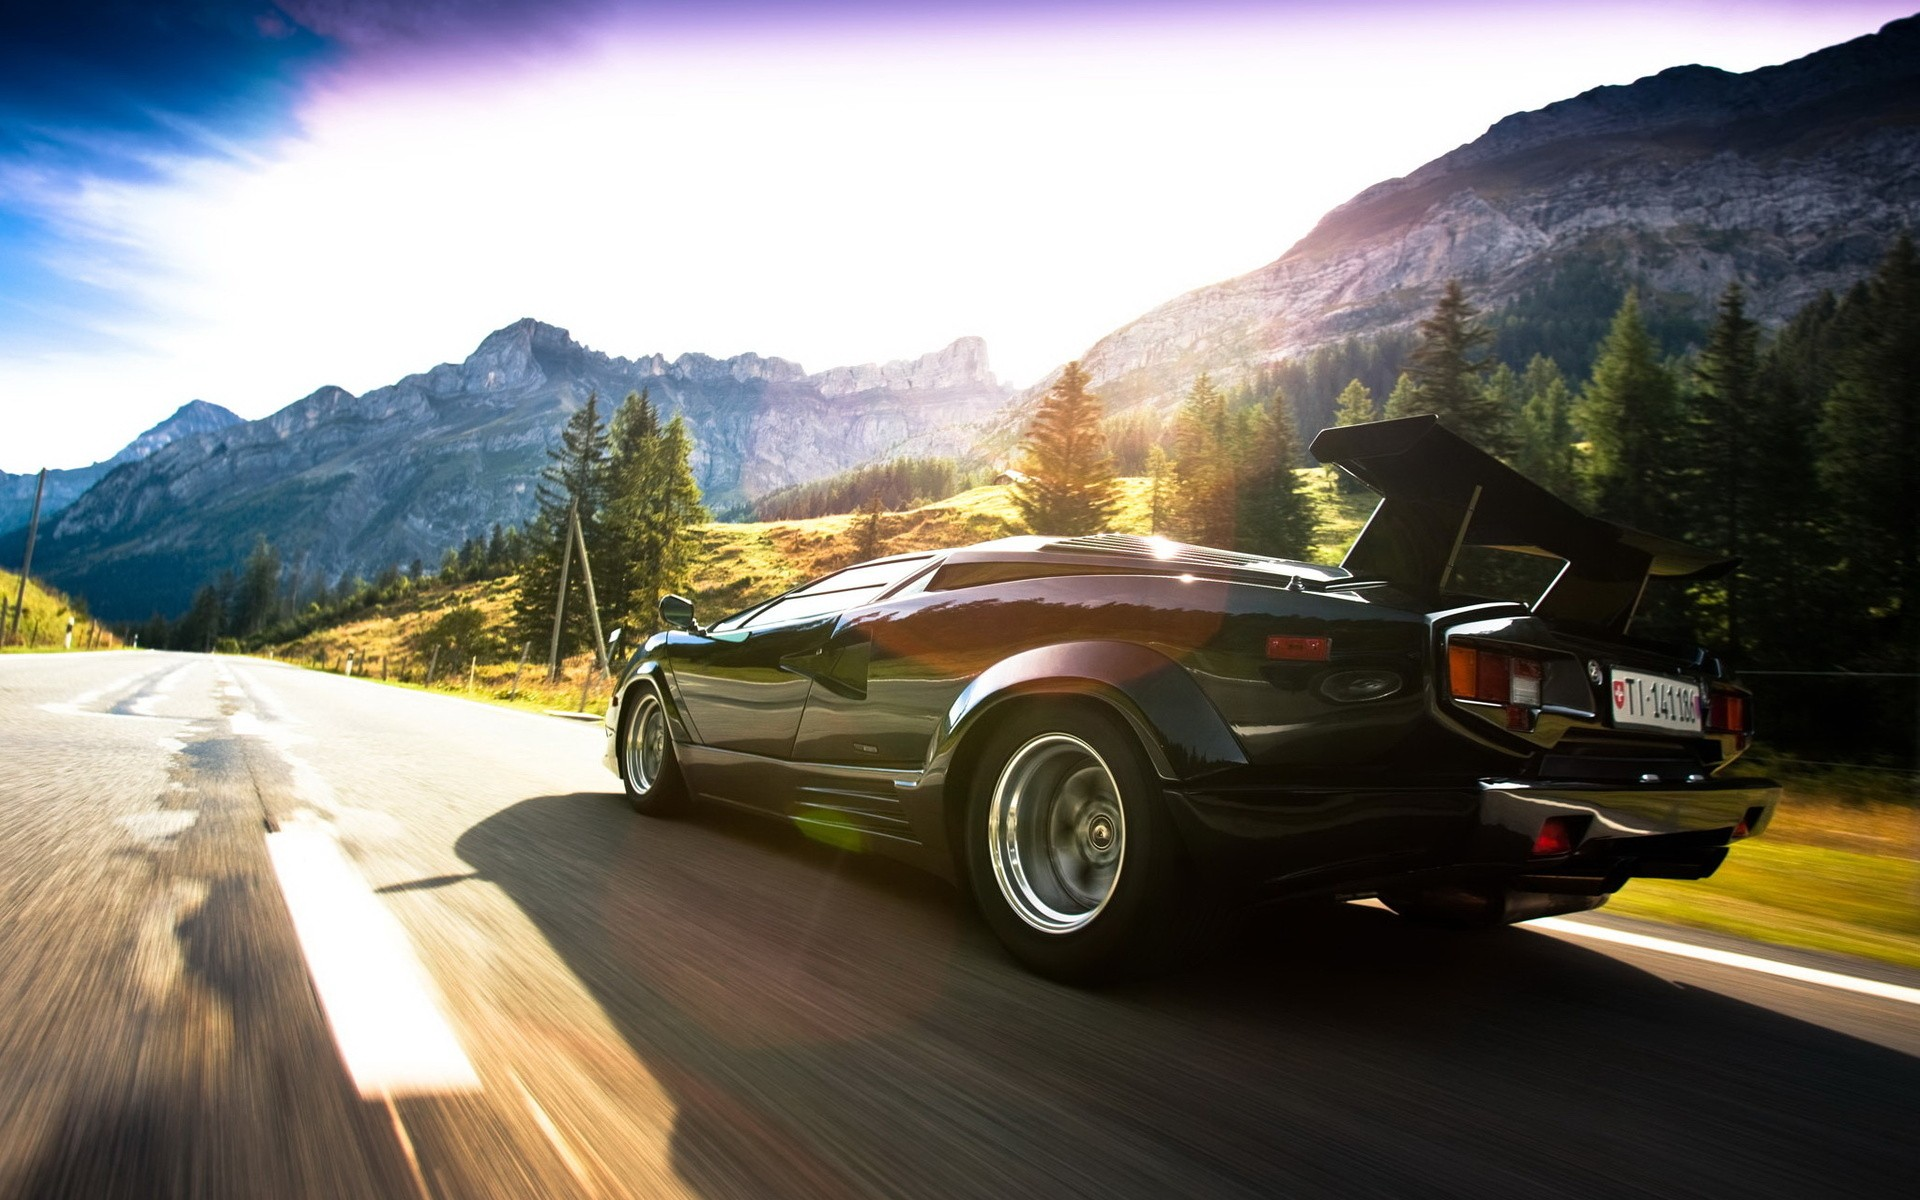 Daily Wallpaper Lamborghini Countach I Like To Waste My Time